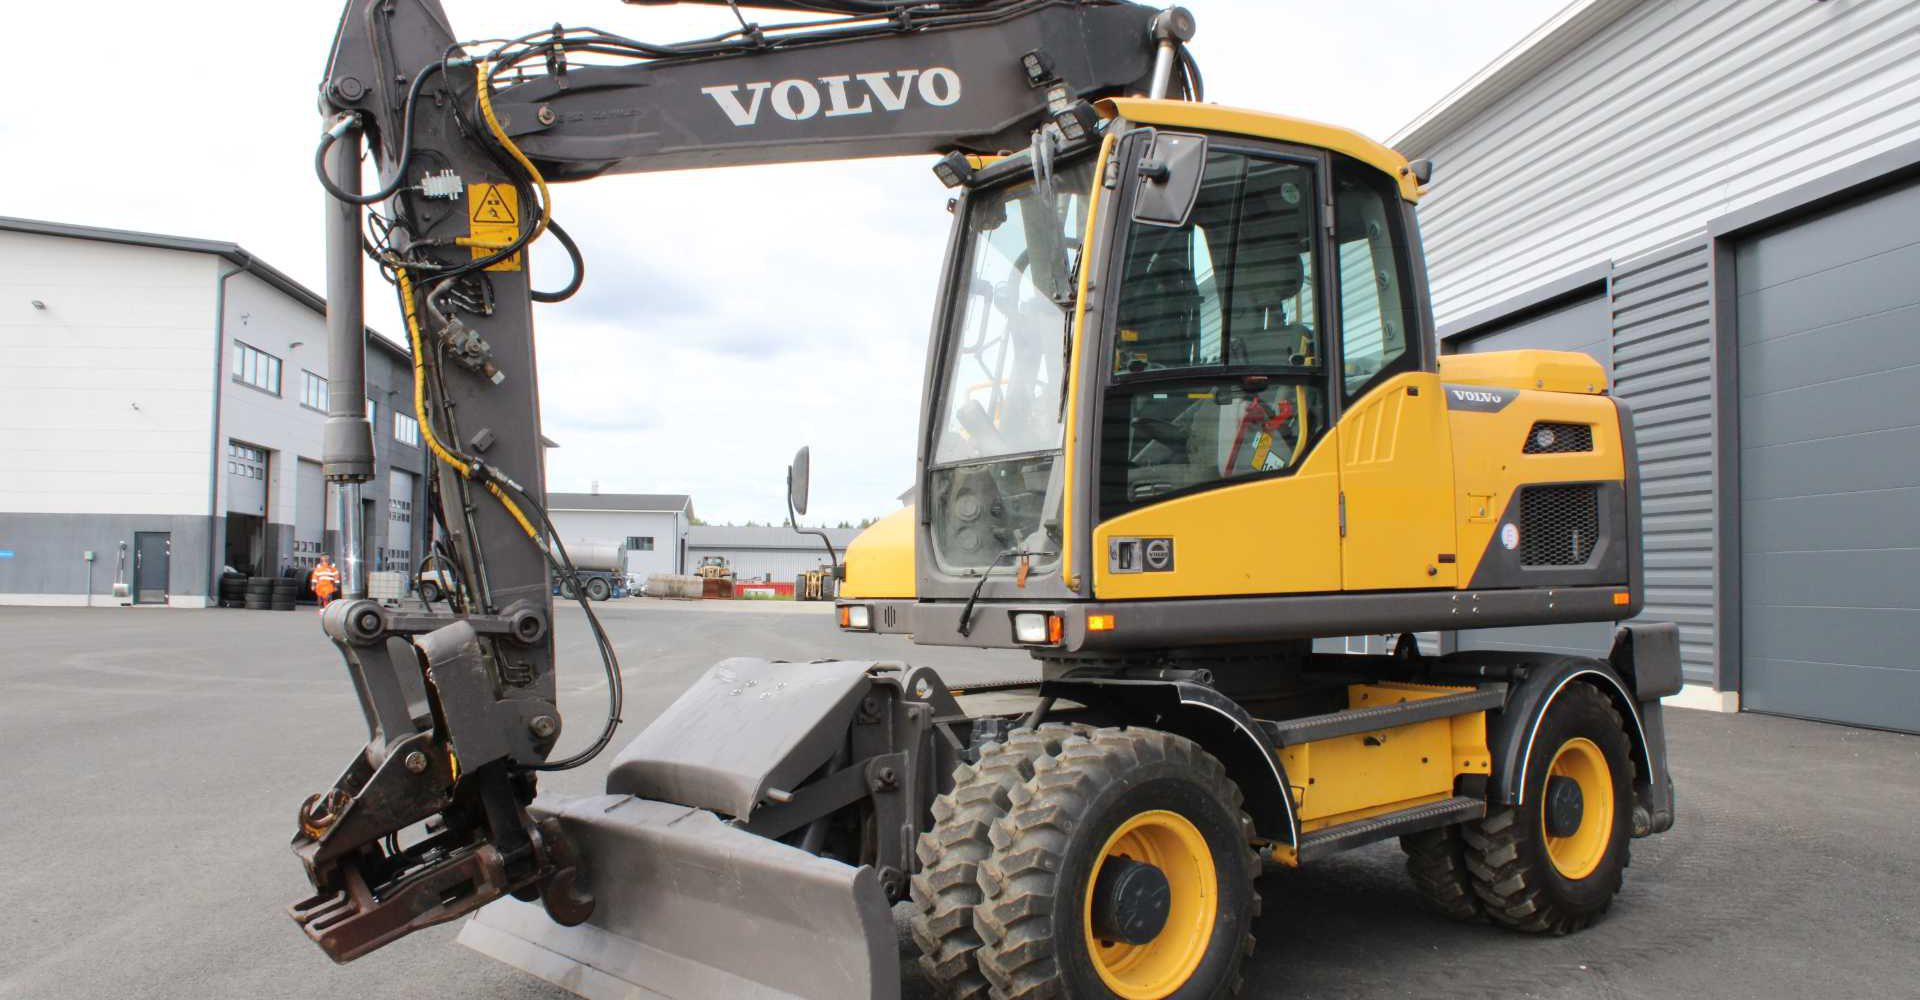 Excavator-Volvo-EW-140D-10-1-aspect-ratio-1440-750